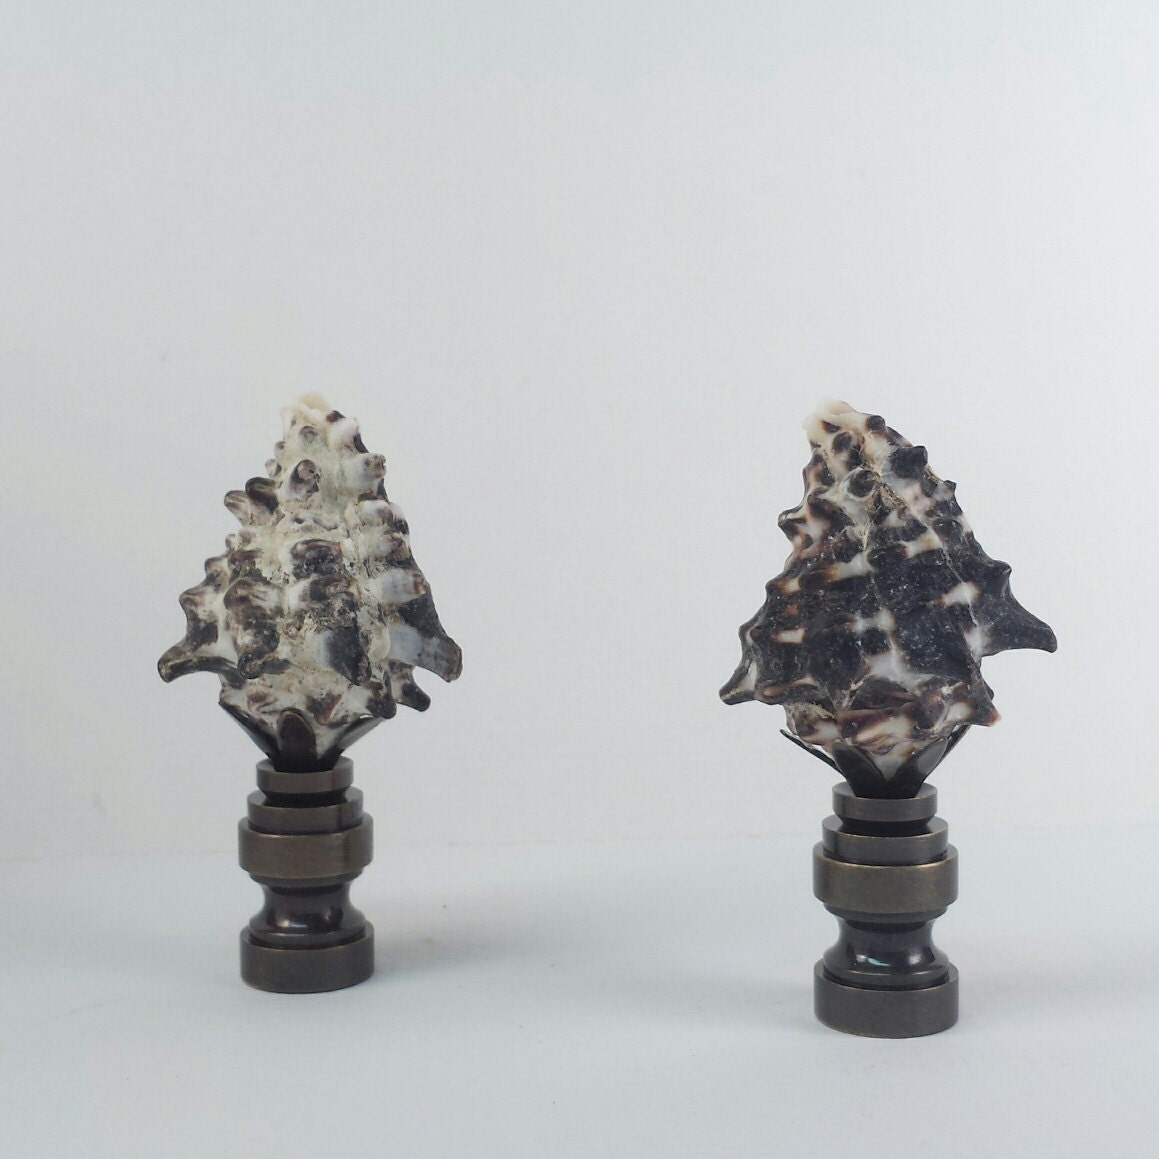 lamp finial a pair of real seashell lamp finials by lampfinials. Black Bedroom Furniture Sets. Home Design Ideas